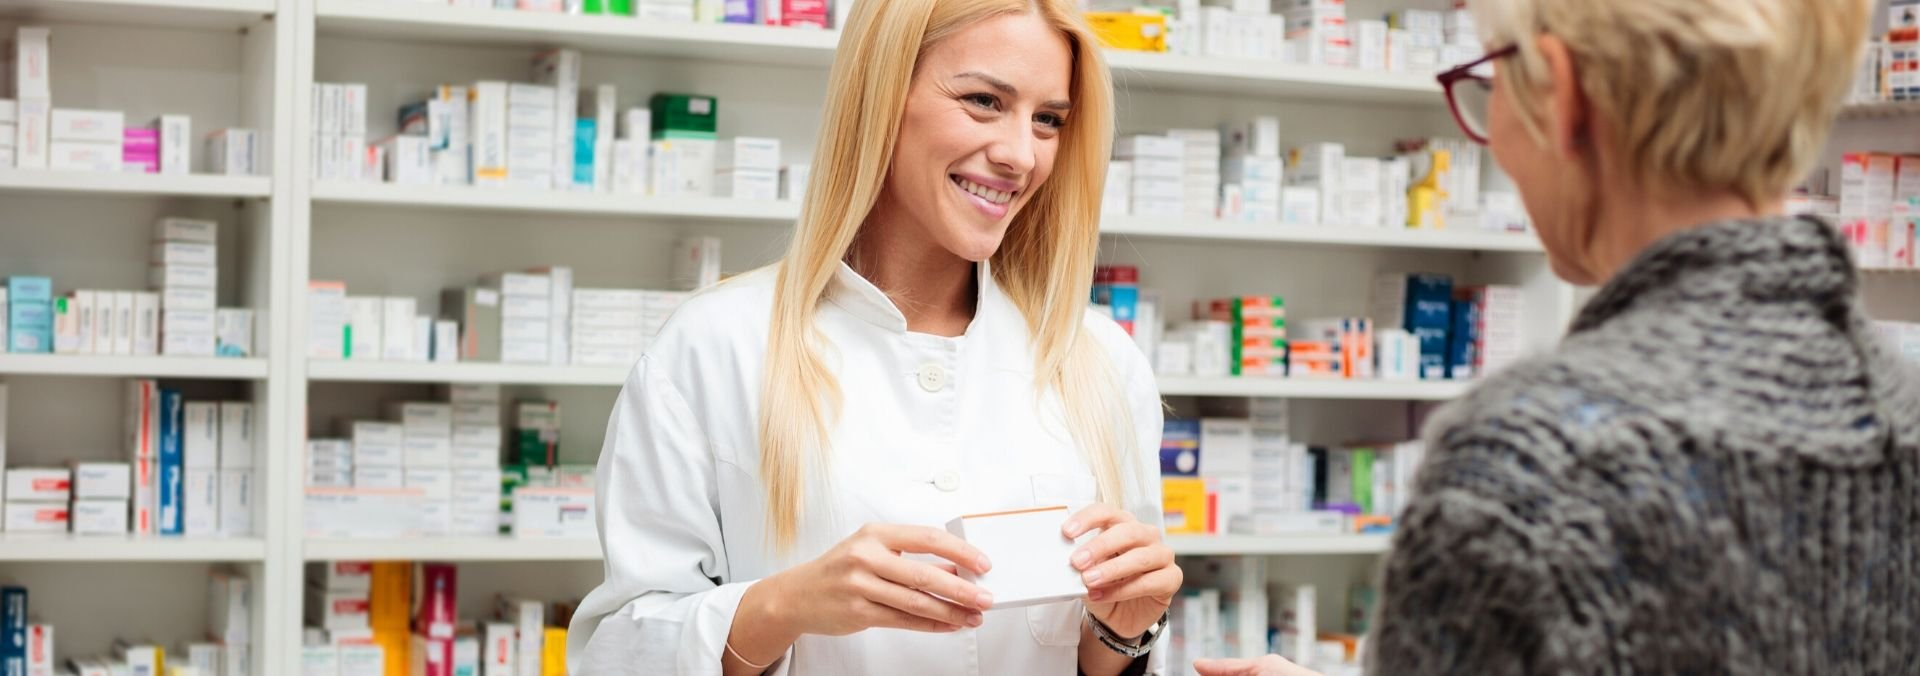 pharmacy technician with customer